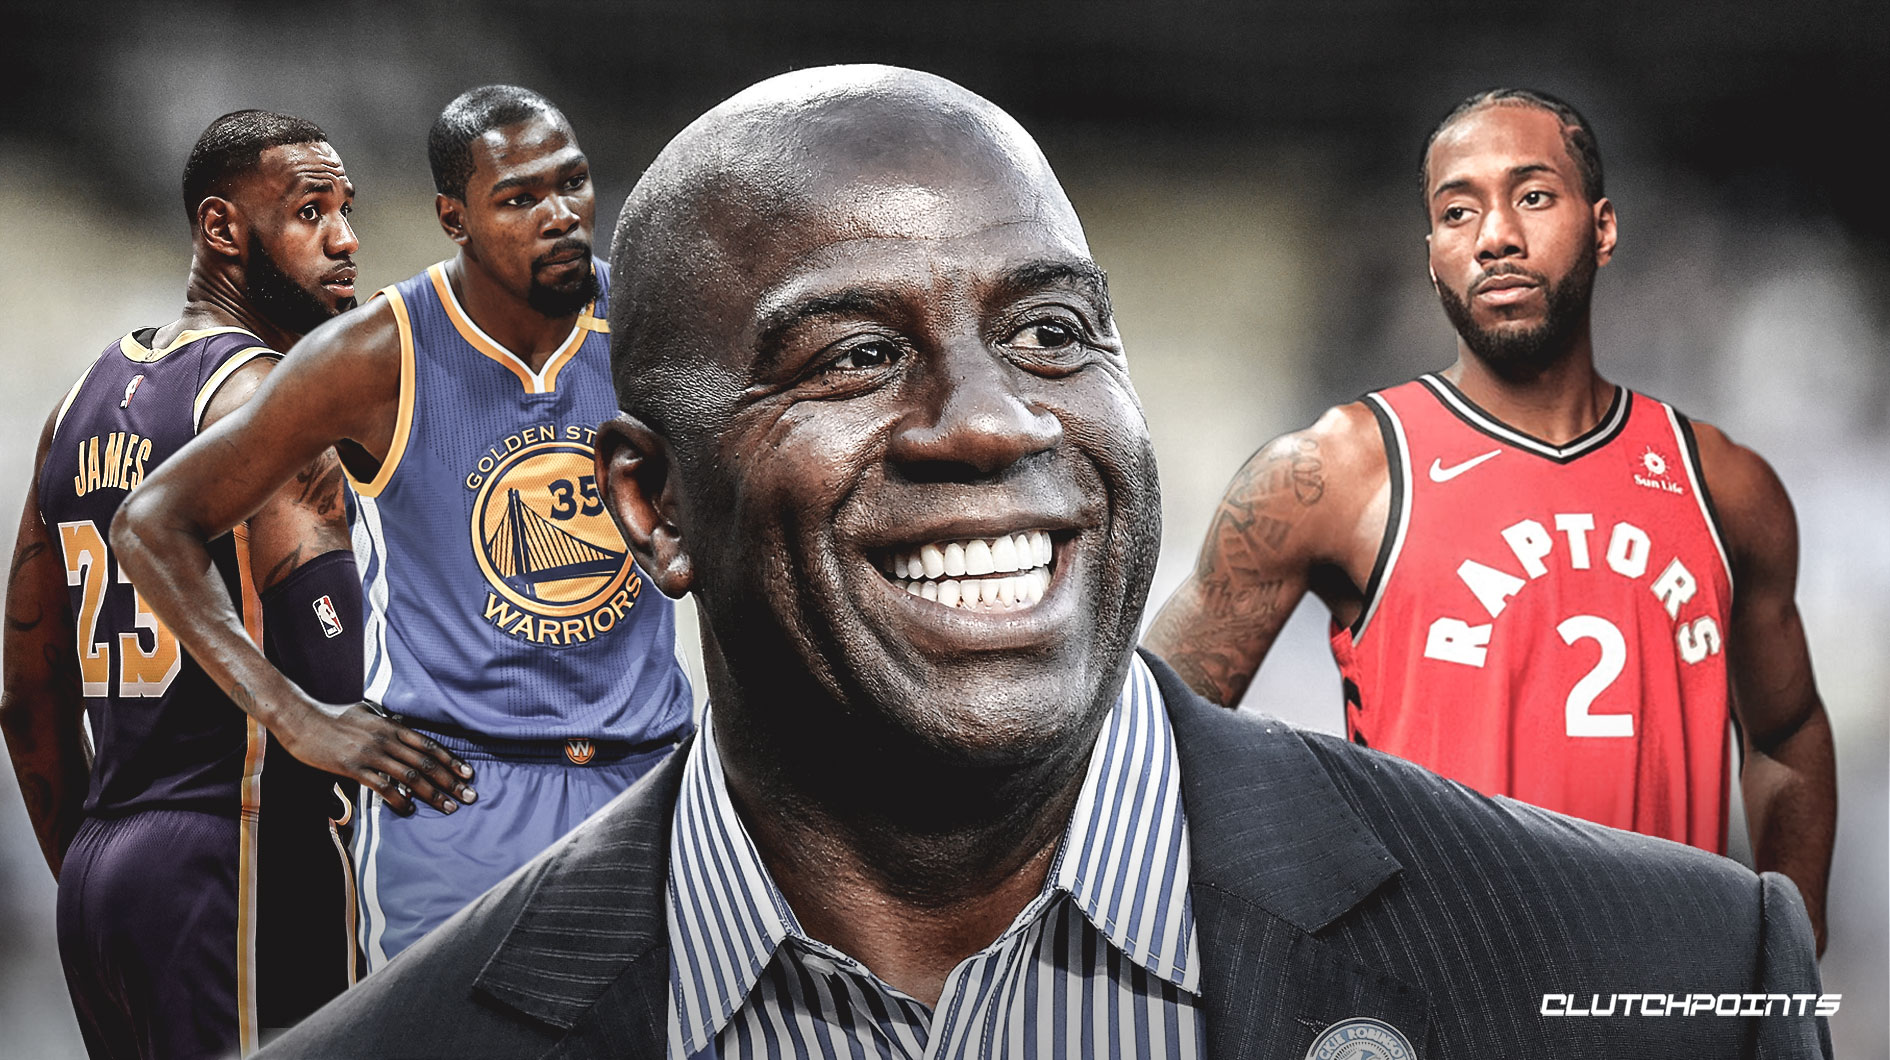 Magic-Johnson-wants-a-chance-to-_convince_-Kawhi-Leonard-Kevin-Durant-to-join-LeBron-James-in-free-agency